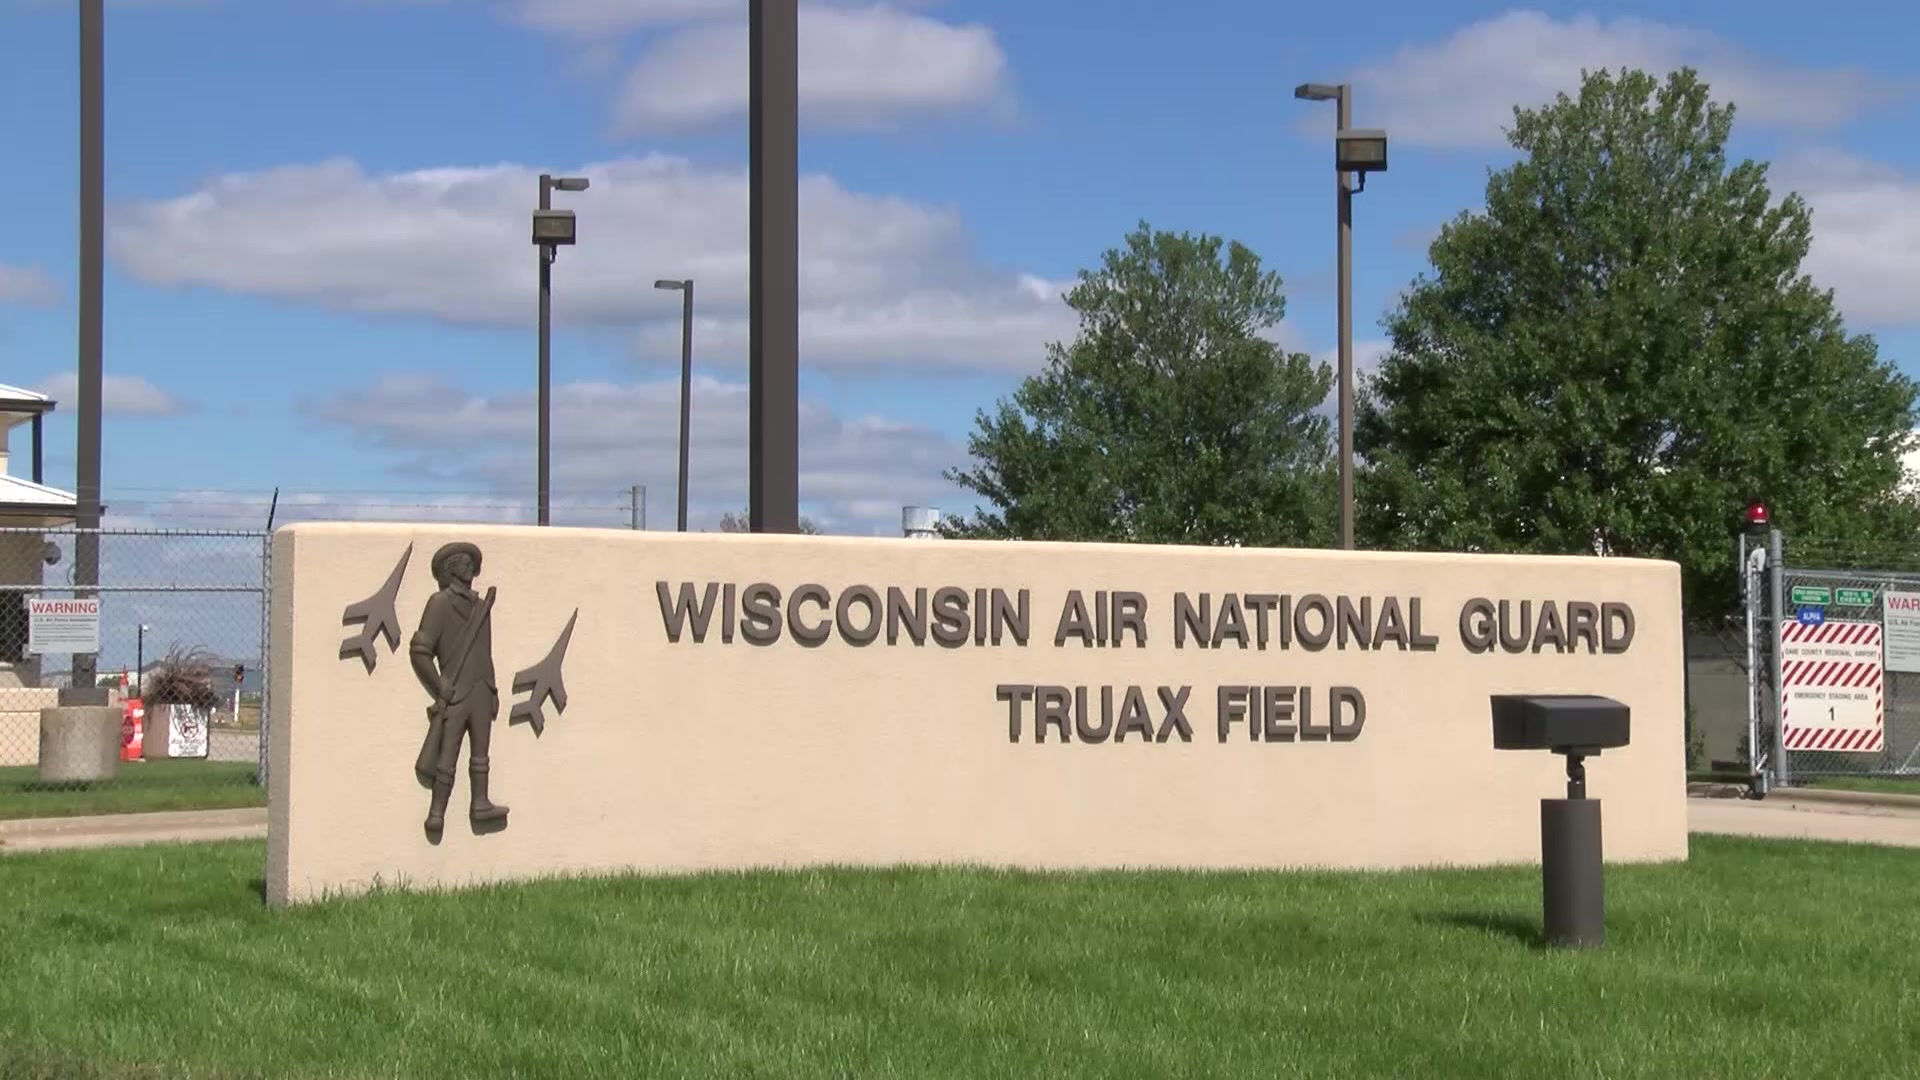 DVIDS - Video - Wisconsin Air National Guard Truax Field Entrance